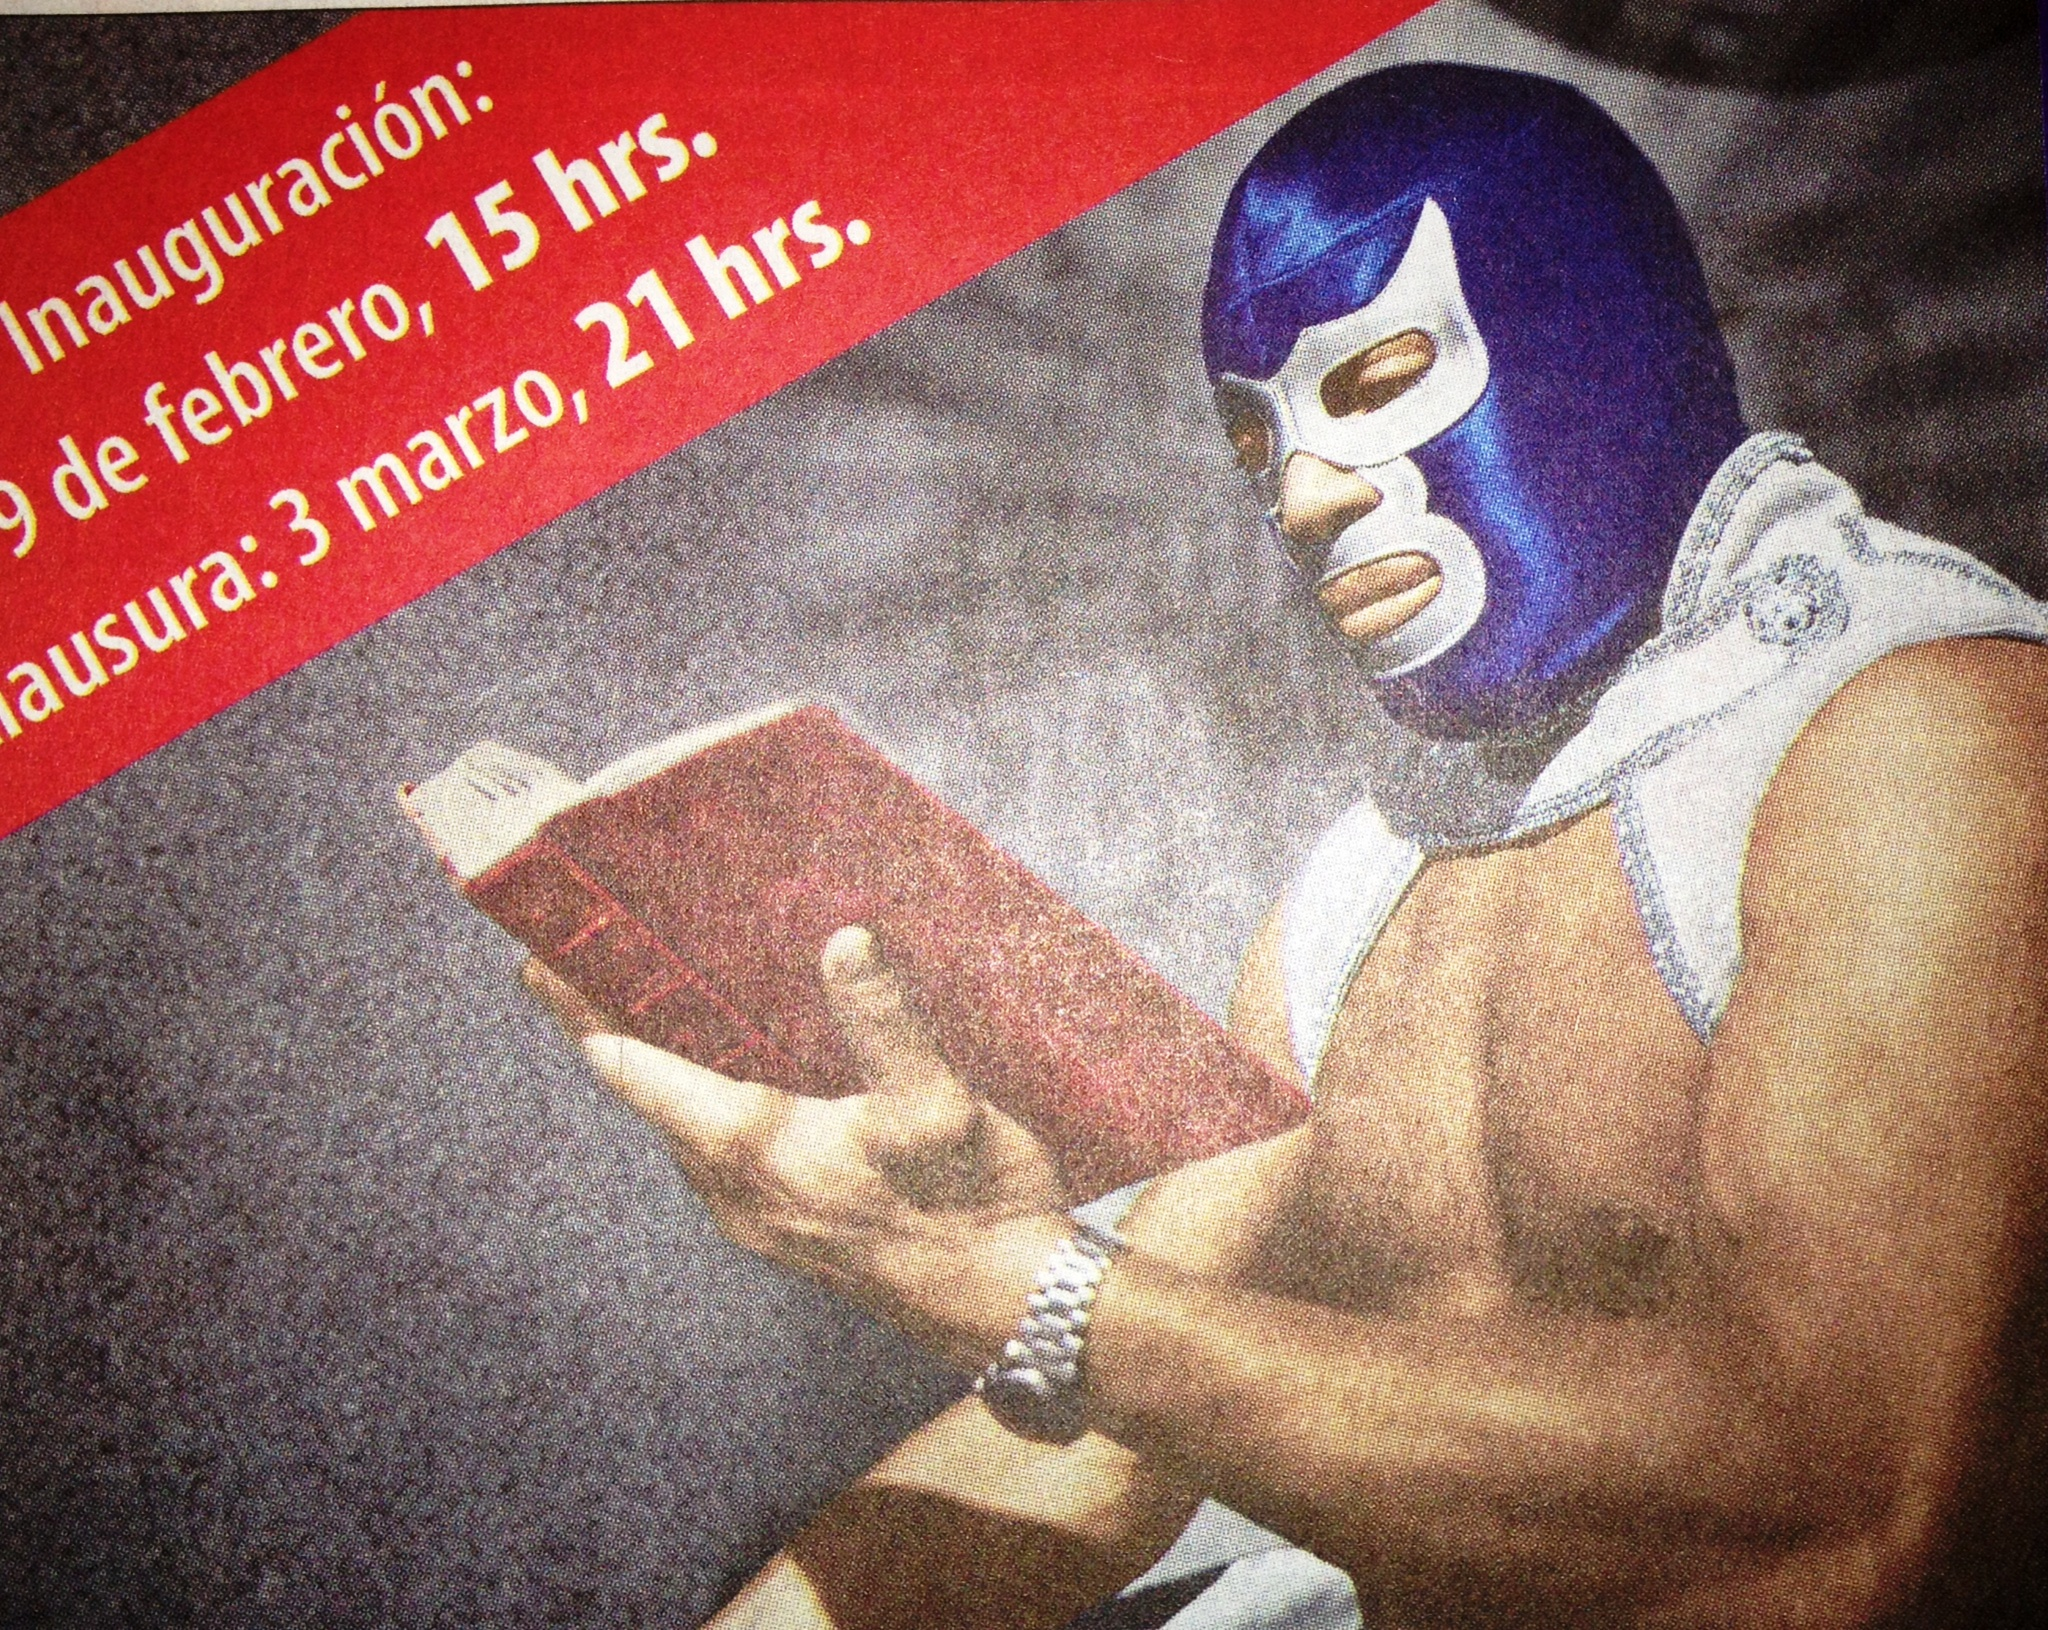 Ritchie Valens Casket Luchador. it's been a wild time since christmas, full of tragedy, loss, war,